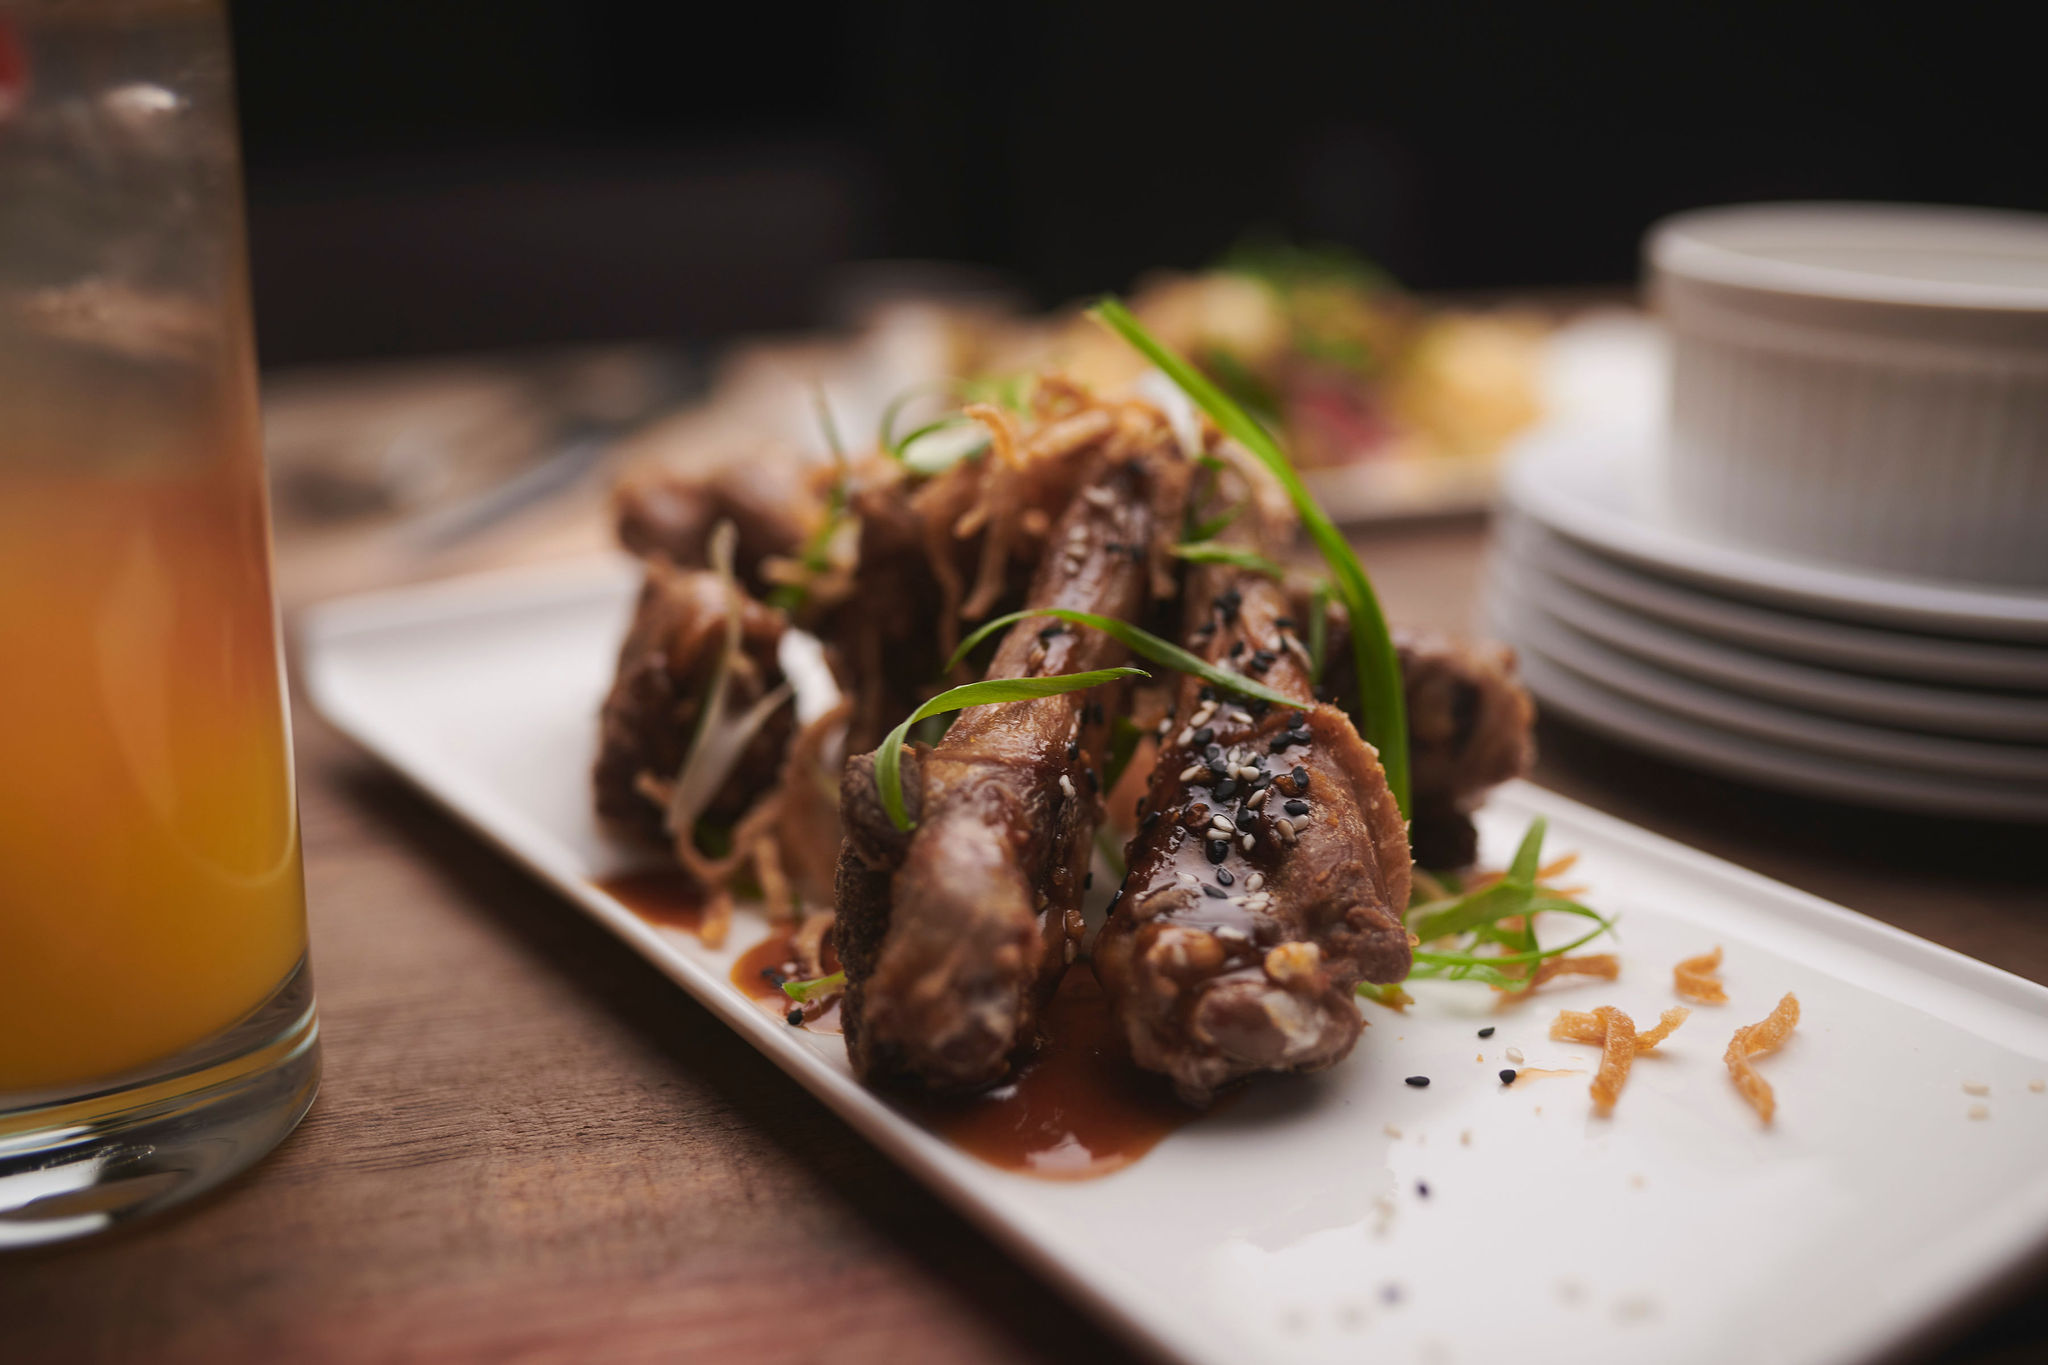 An appetizer of duck drumettes on a white plate.